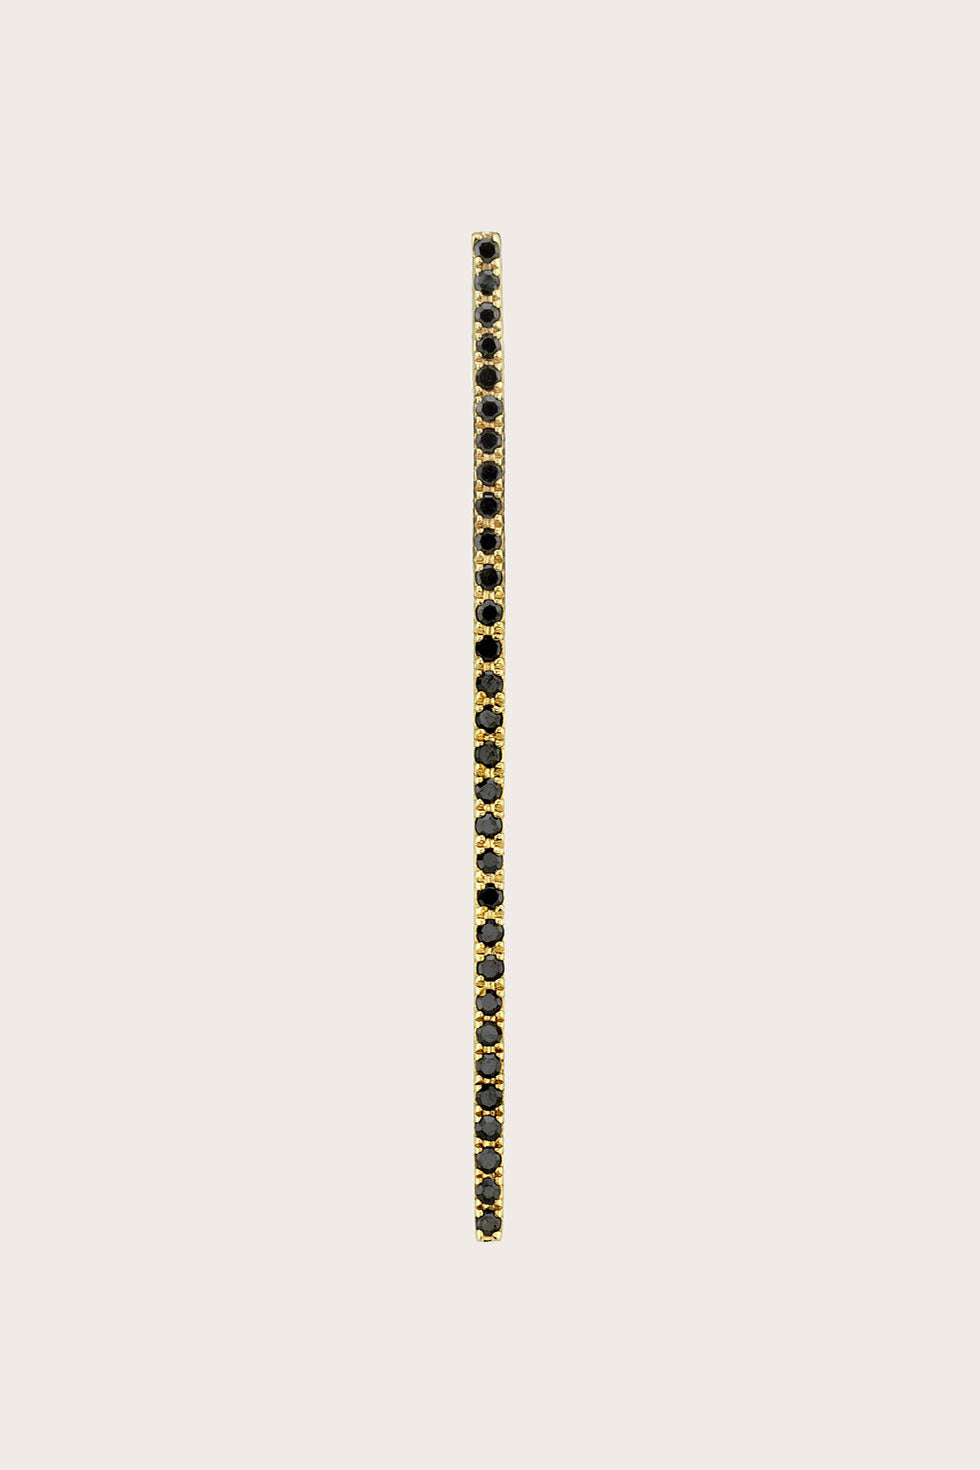 Gabriela Artigas - Bar Axis Earring, Gold & Black Diamond